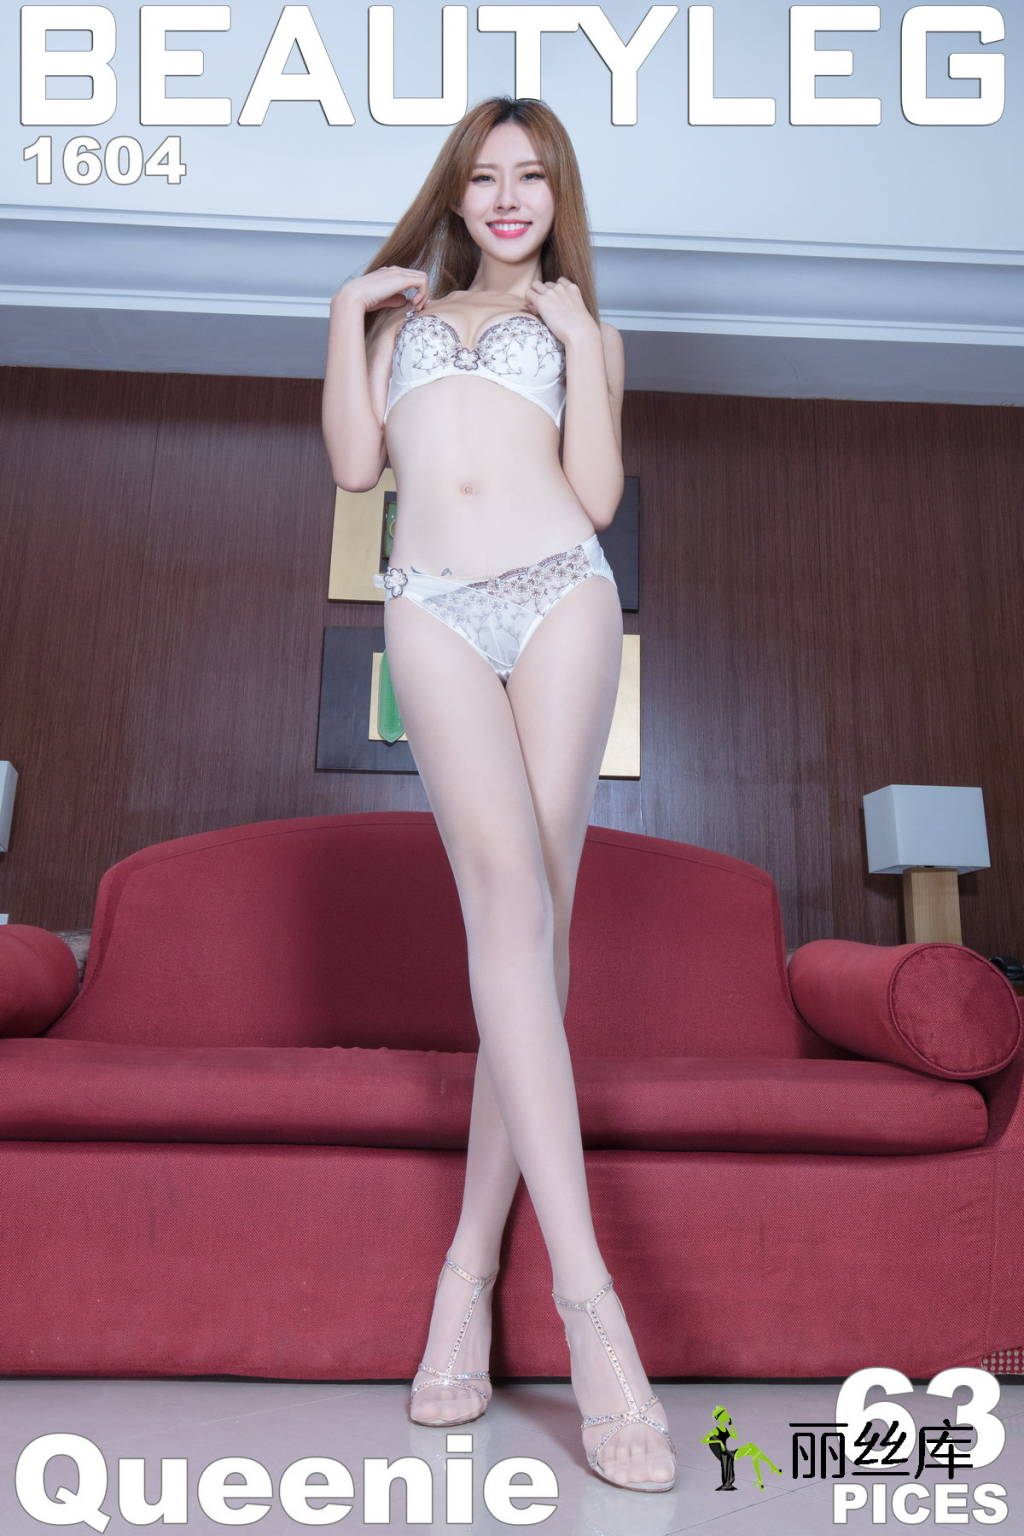 美腿Beautyleg 腿模写真 VOL.1604 Queenie_丽丝库